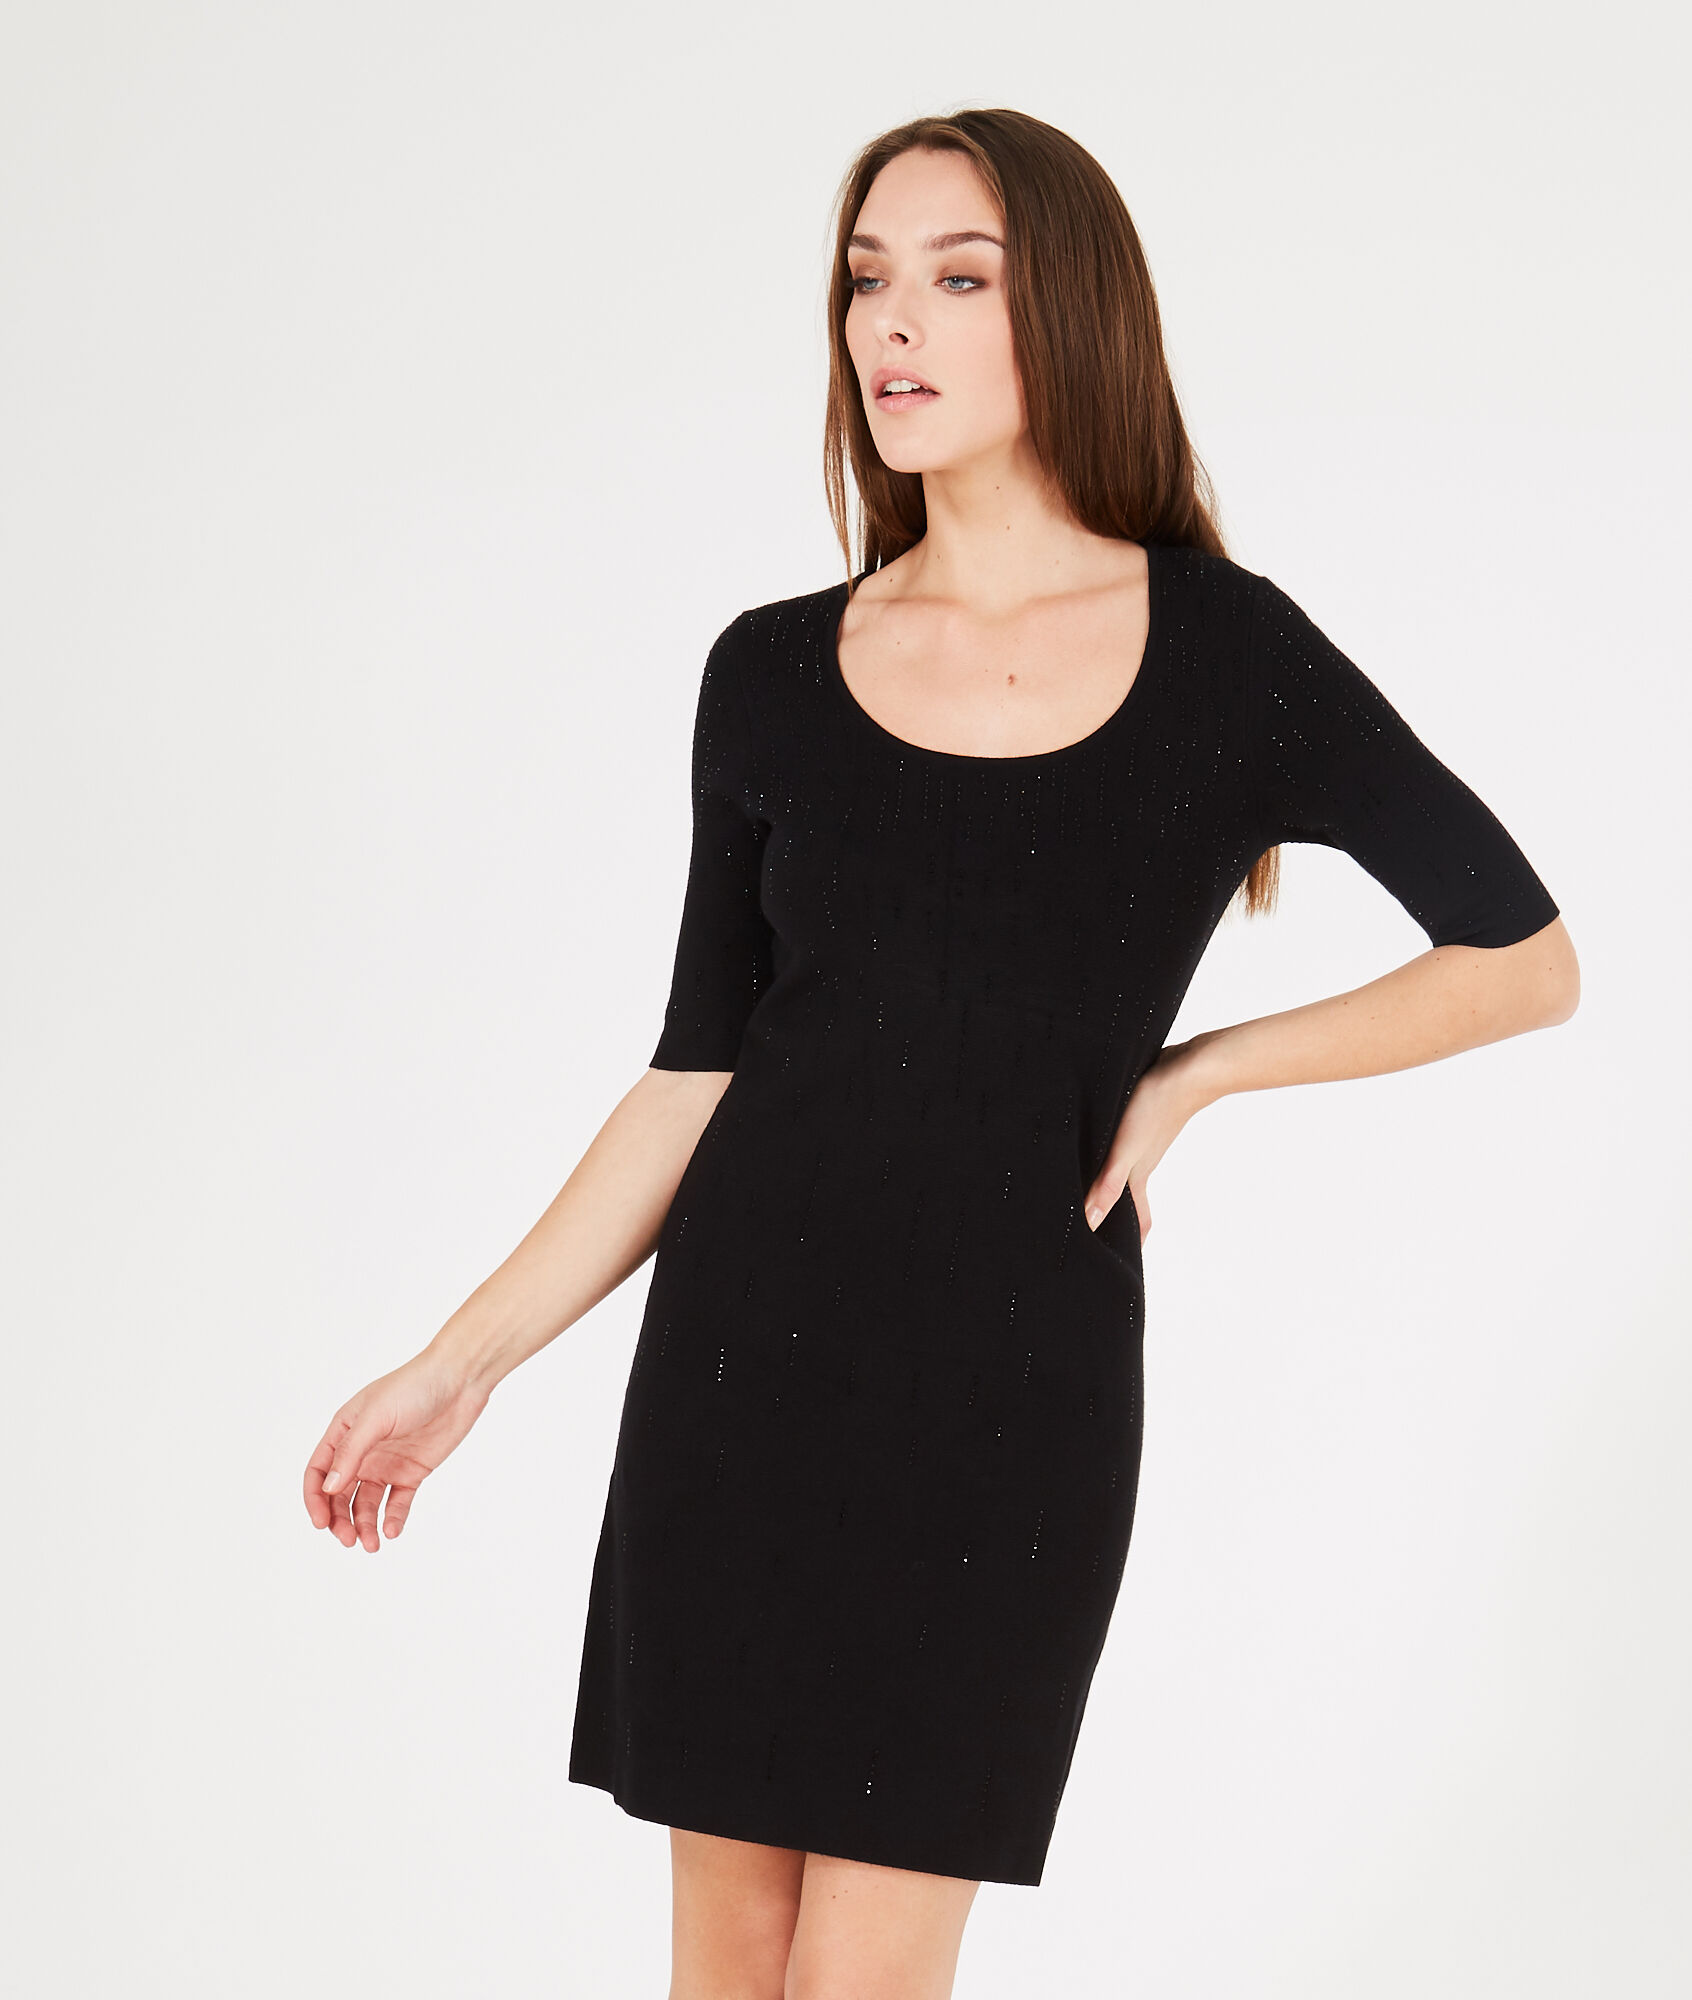 Robe noire chic taille 48